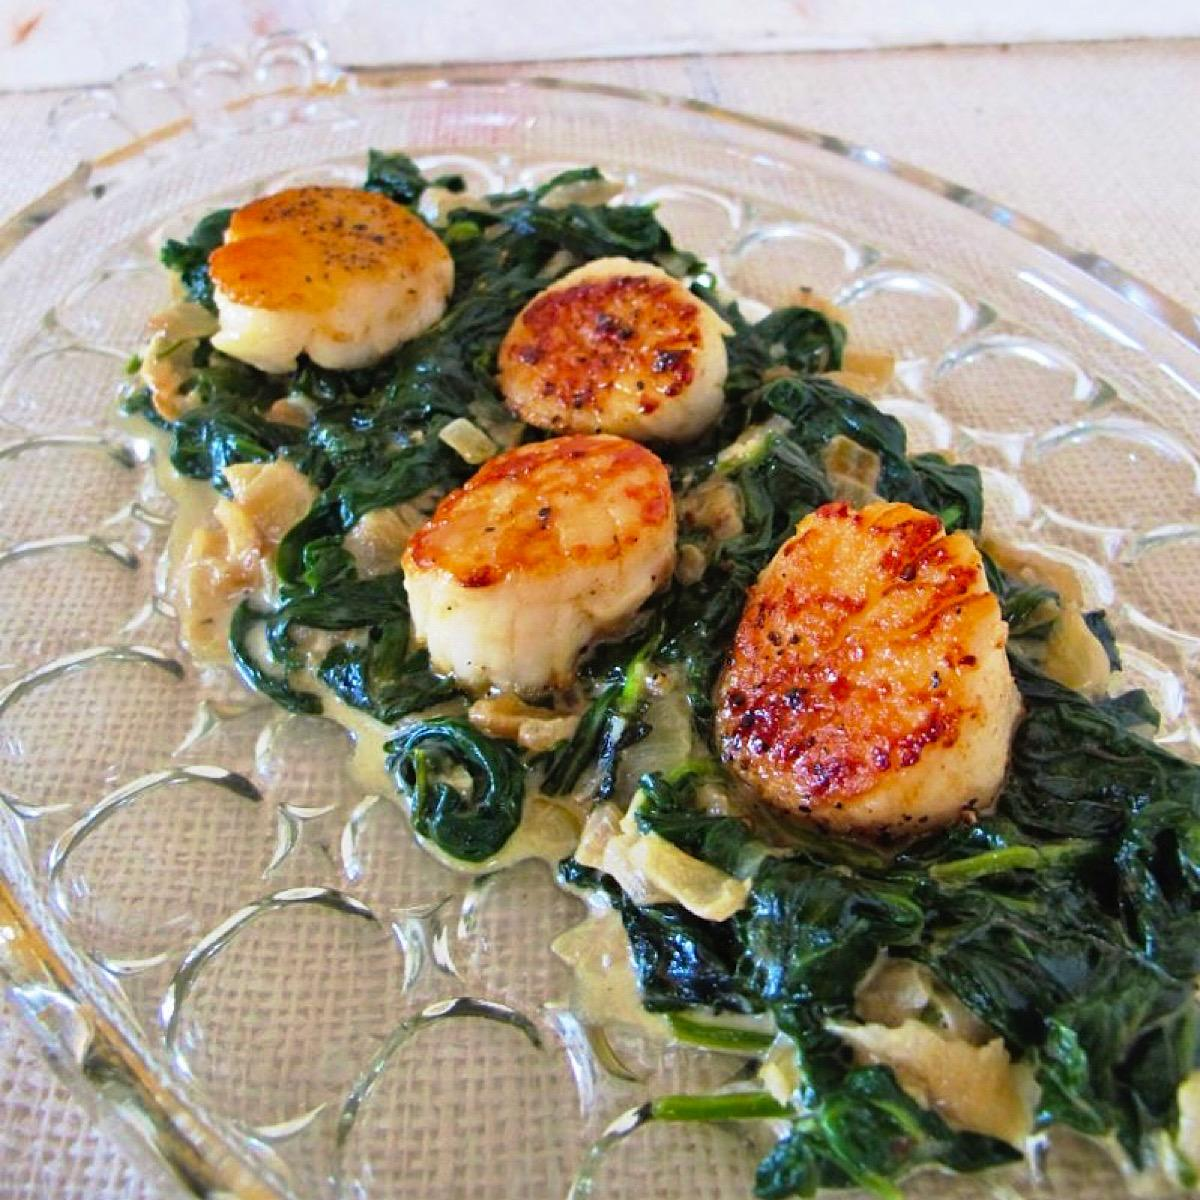 Seared scallops on Creamed Spinach